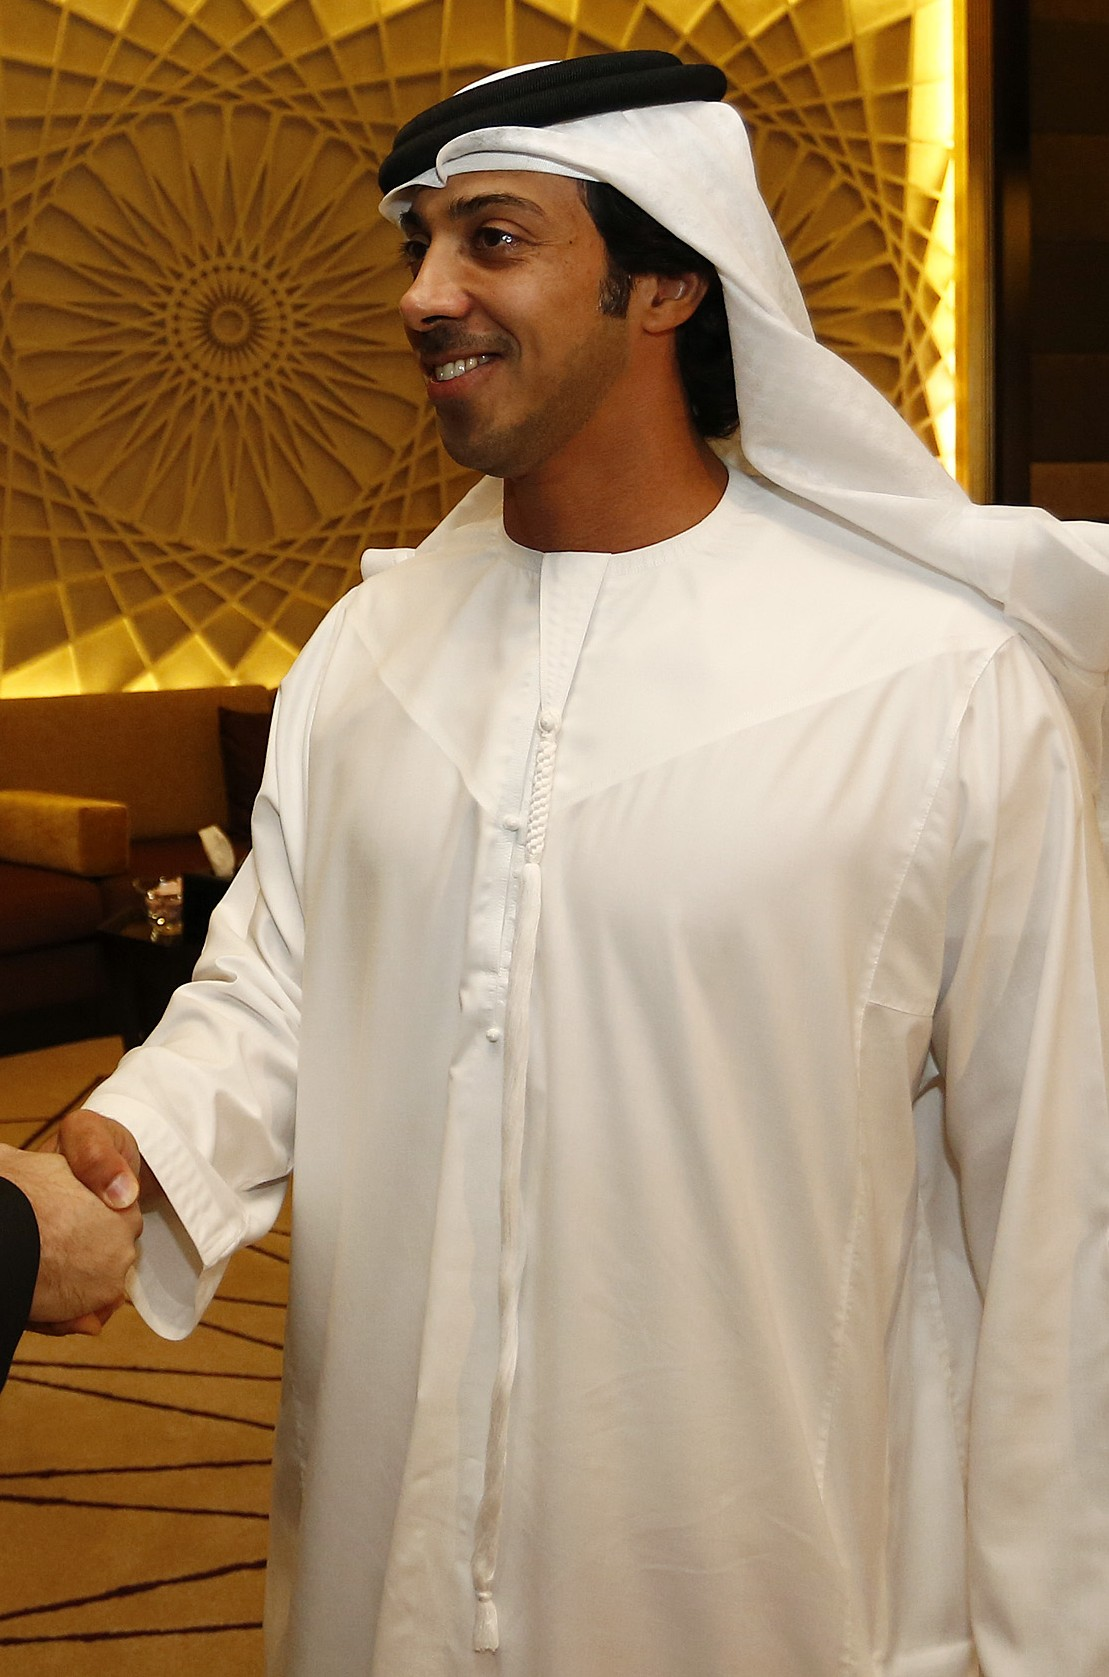 File:Sheikh Mansour shaking the hand of Michael Spindelegger (crop).jpg -  Wikimedia Commons